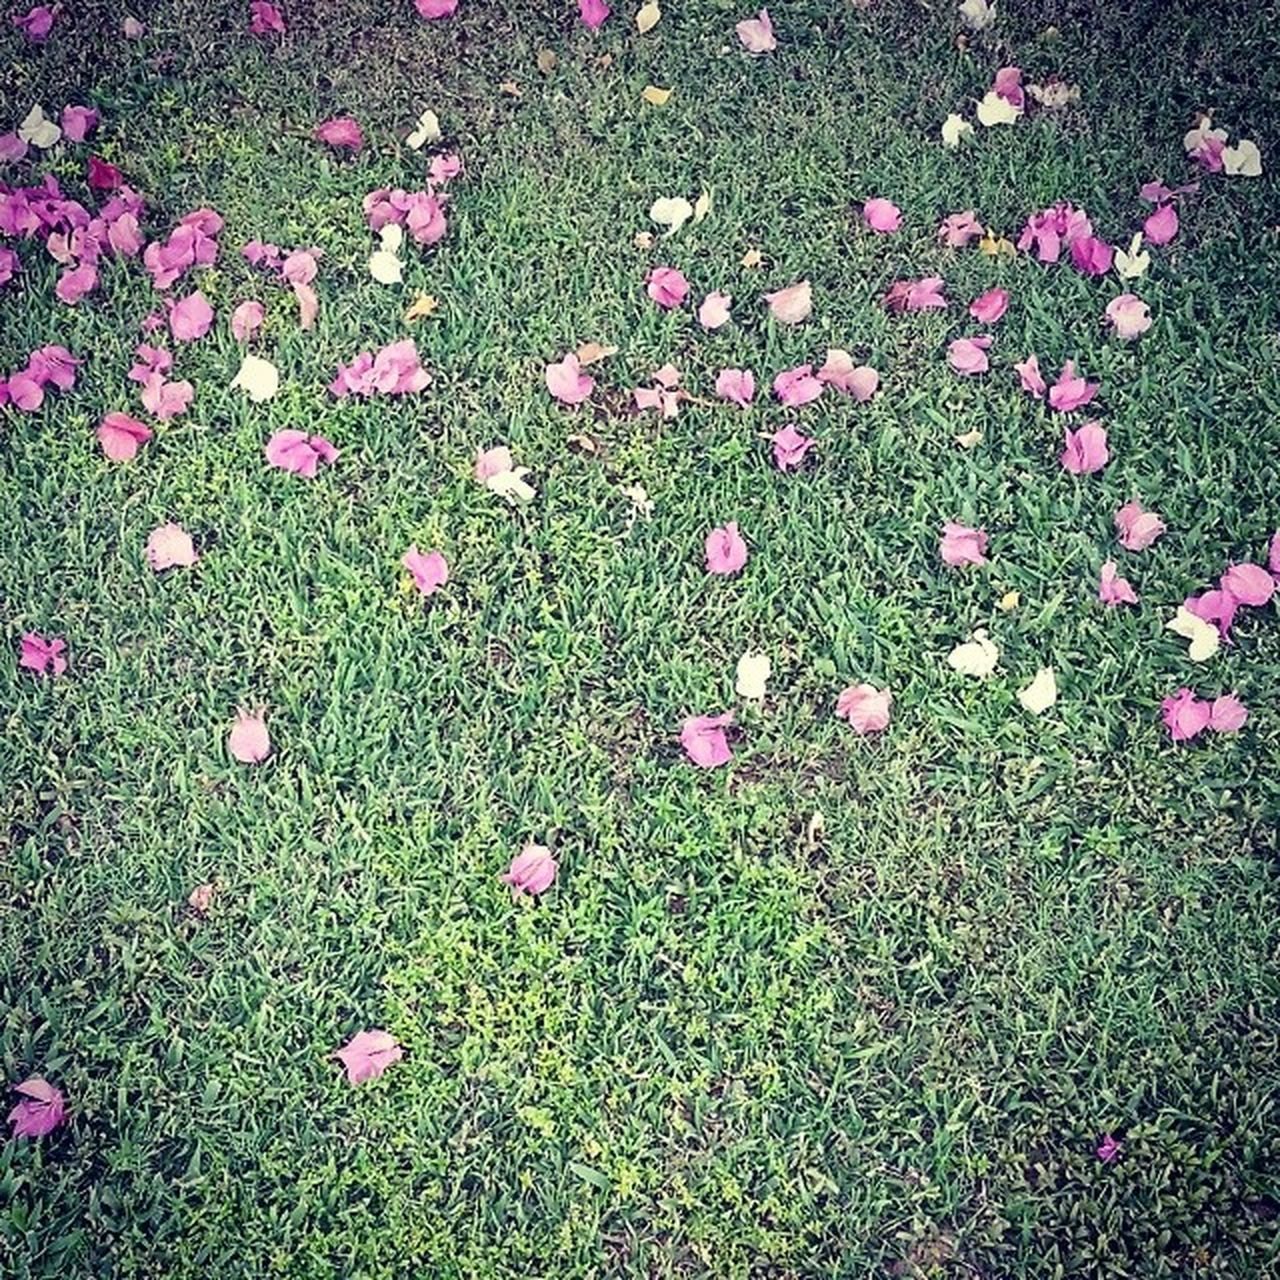 grass, nature, no people, high angle view, flower, growth, field, day, outdoors, pink color, green color, beauty in nature, tranquility, plant, fragility, freshness, flower head, close-up